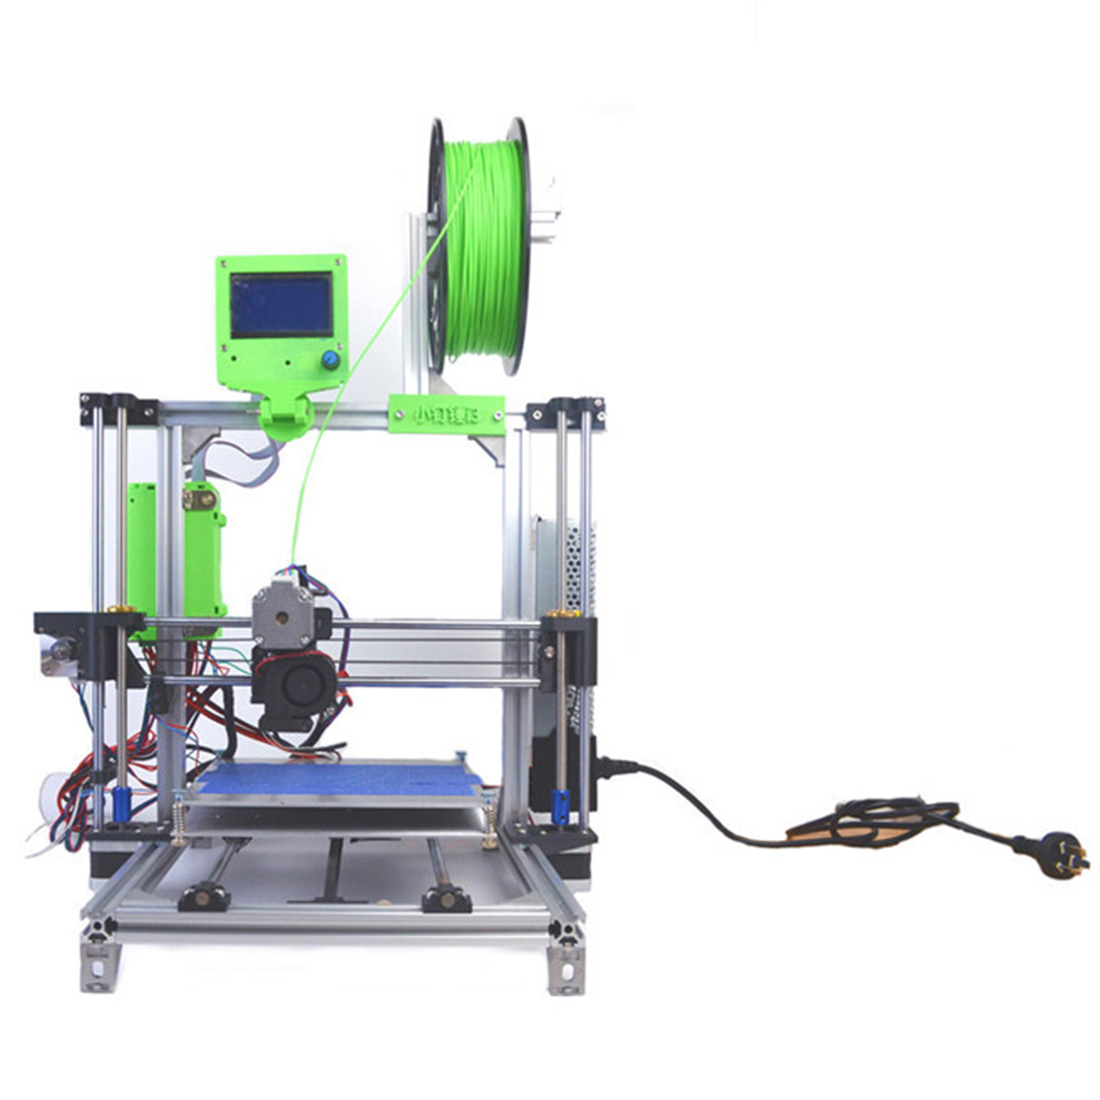 High Tech DIY 3D Printer Upgraded Aluminum Frame Printing Kit Programmable Toys Toys & Hobbies